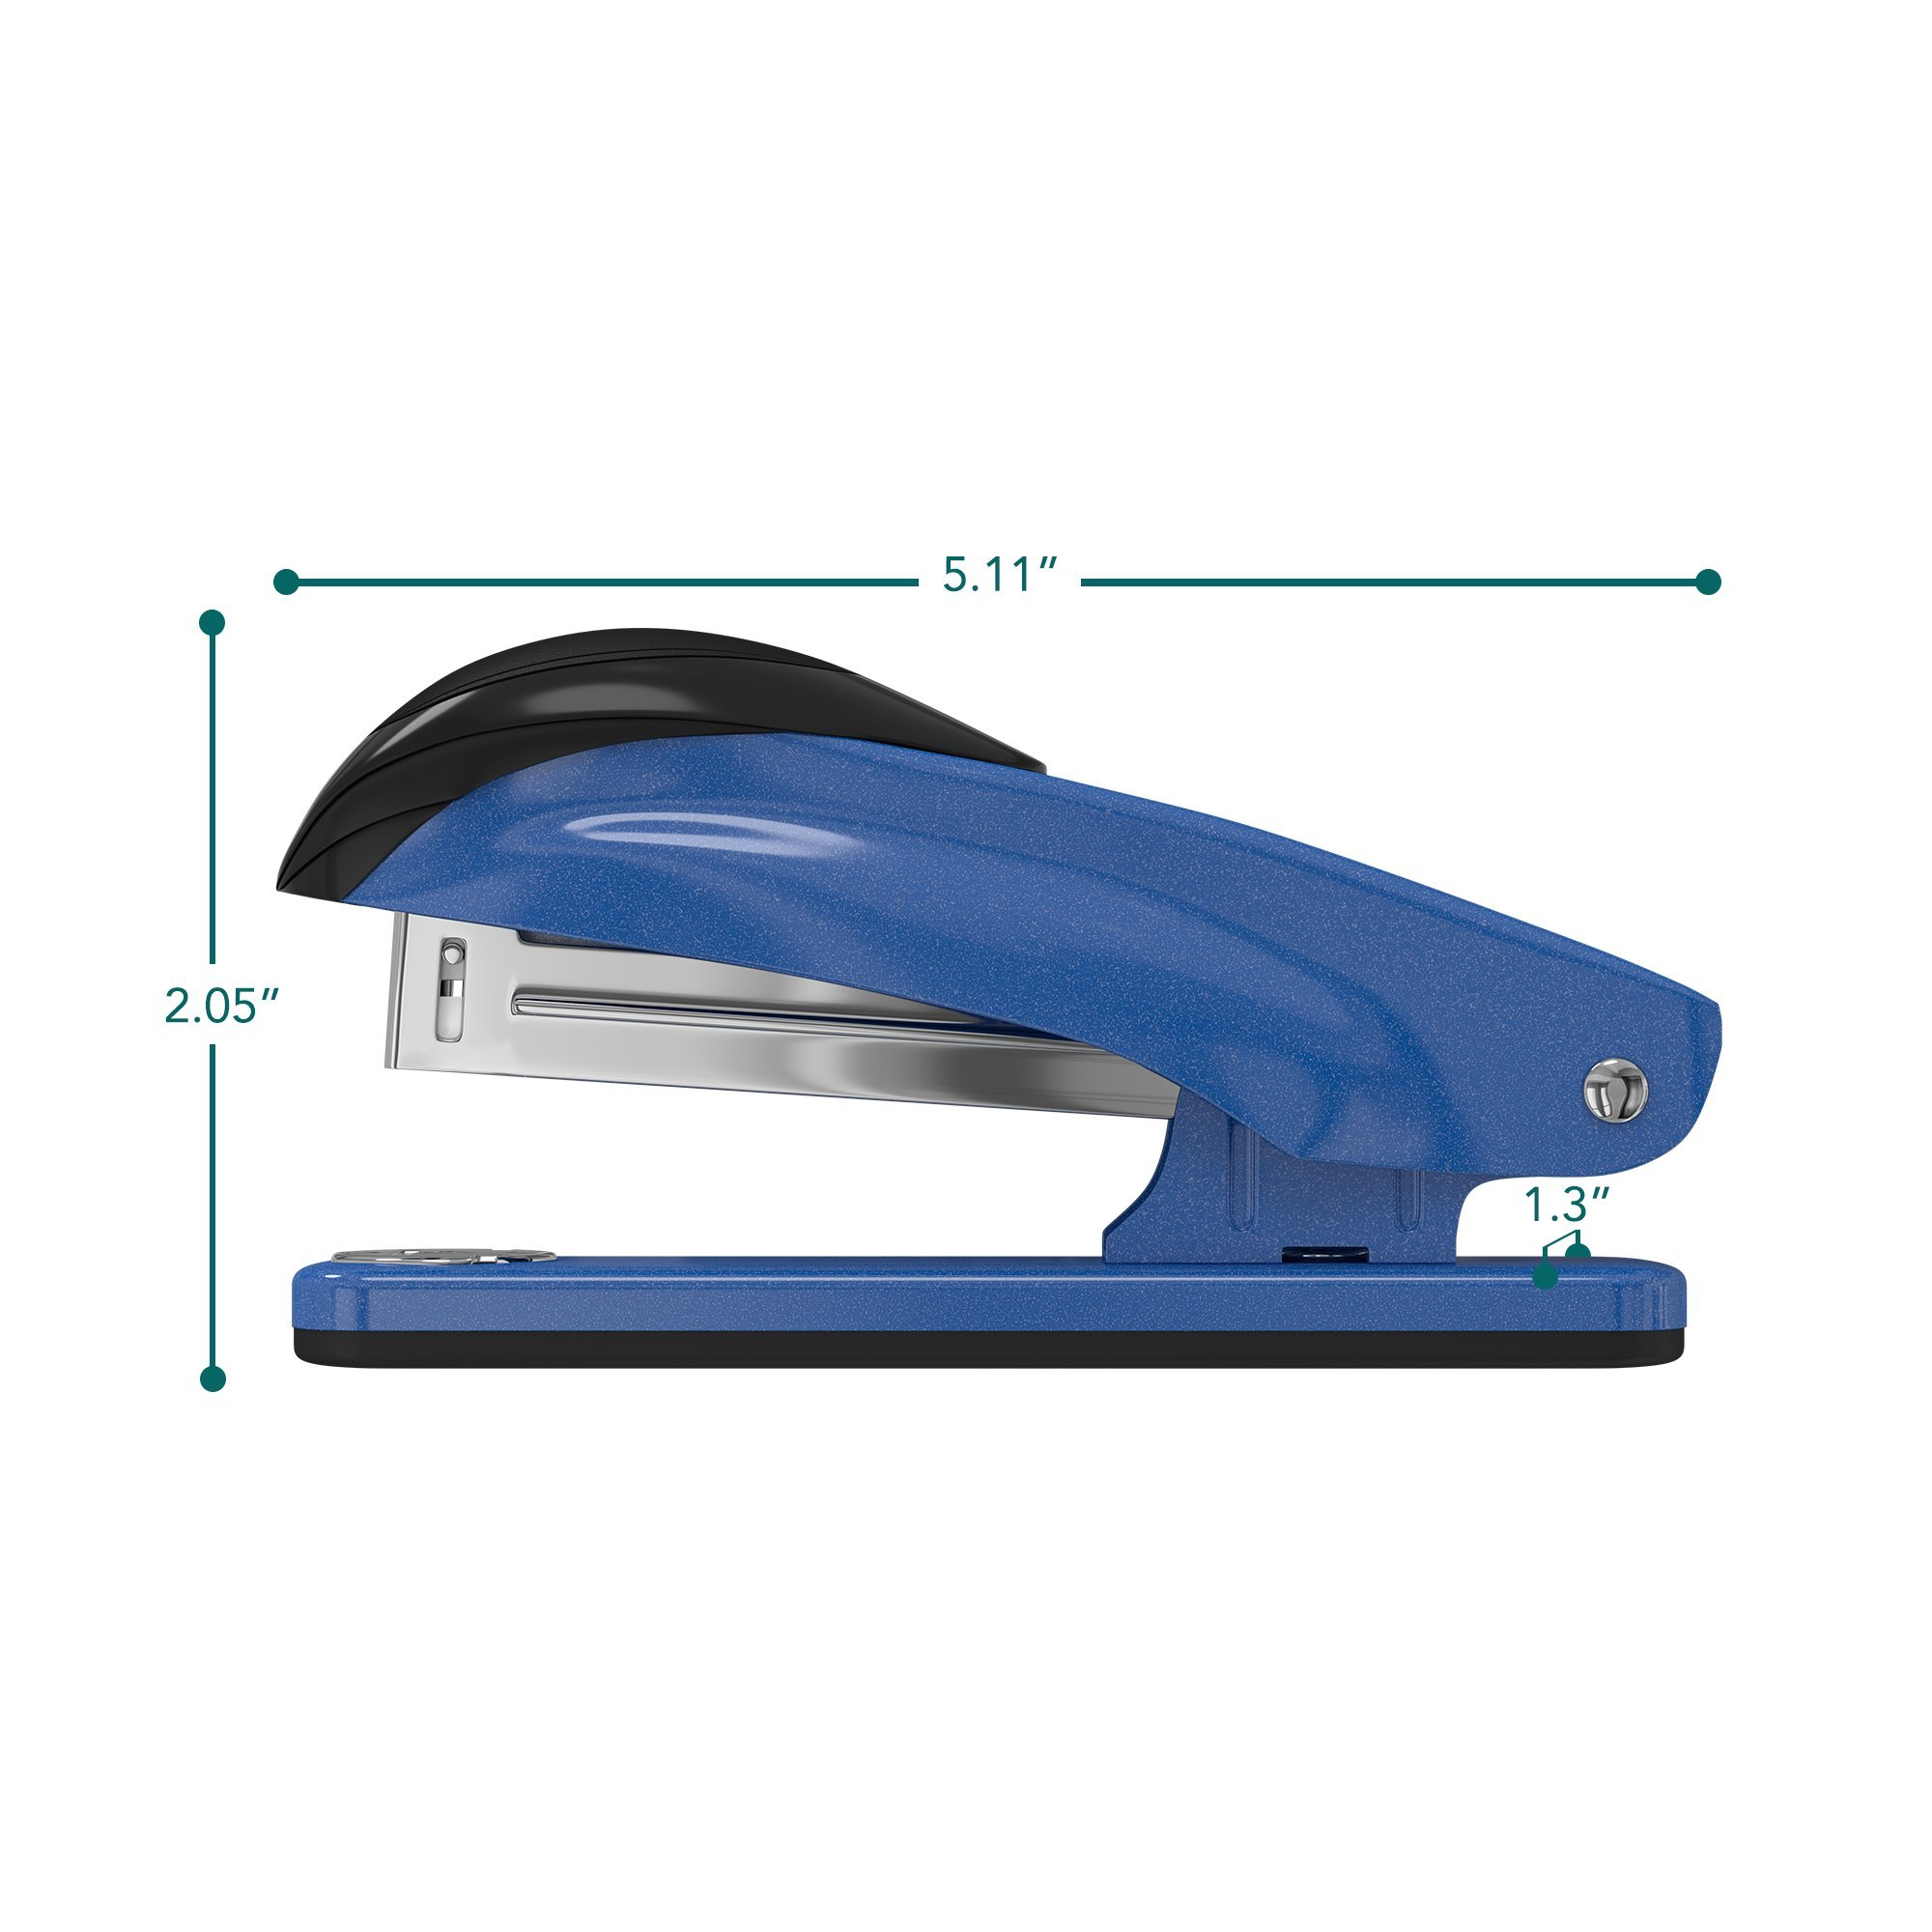 Desk Stapler Set (4 Pack) for Office, School and Home - Small, Compact, Effortless & Ergonomic Metal Design - 20 Sheets Standard 24-26/6 Size - Blue by desired tools (Image #2)